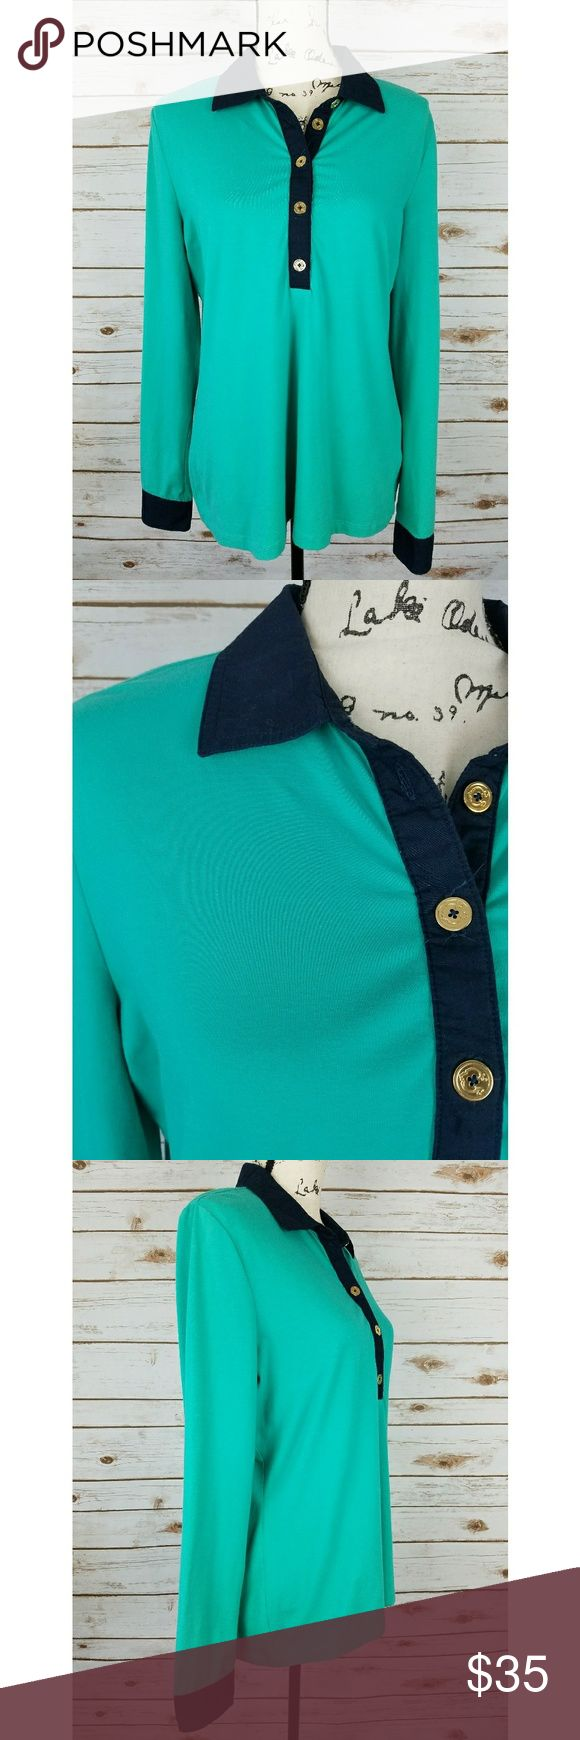 C Wonder Preppy Collared Long Sleeve Turquoise Excellent condition, no stains or flaws. This is perfect for back to school, very preppy and adorable. This brand is sold independently and at Anthropologie   Reasonable offers will be considered, bundles are discounted. No trades and no modeling. I can ship same or next day. Anthropologie Tops Blouses